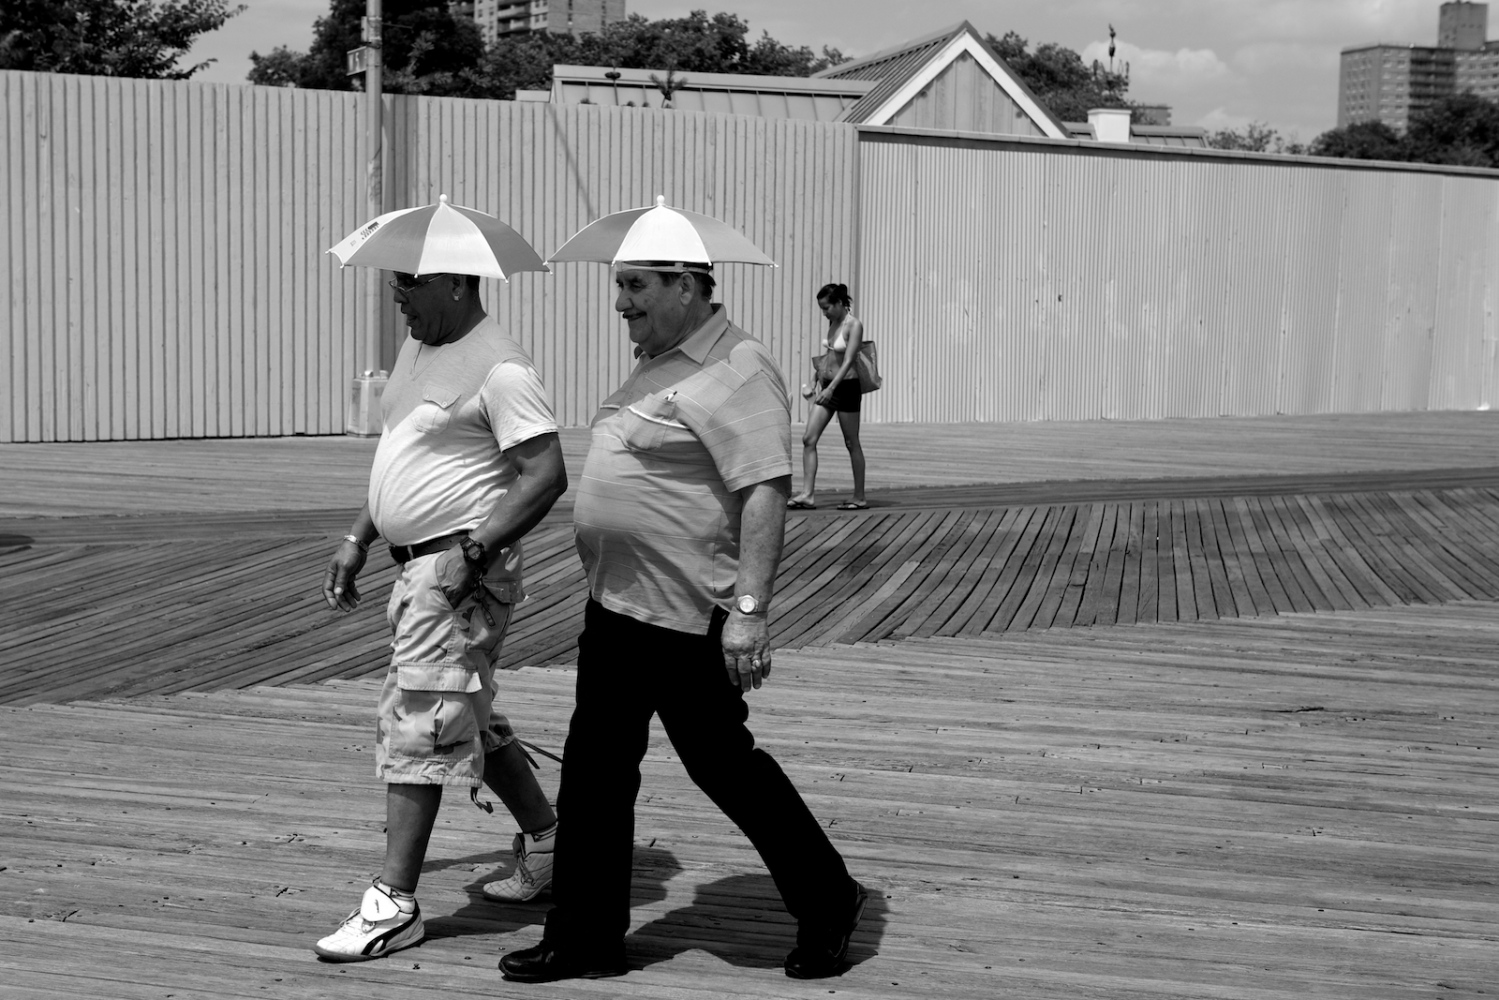 Umbrella Heads. Coney Island, NY, Summer 2011